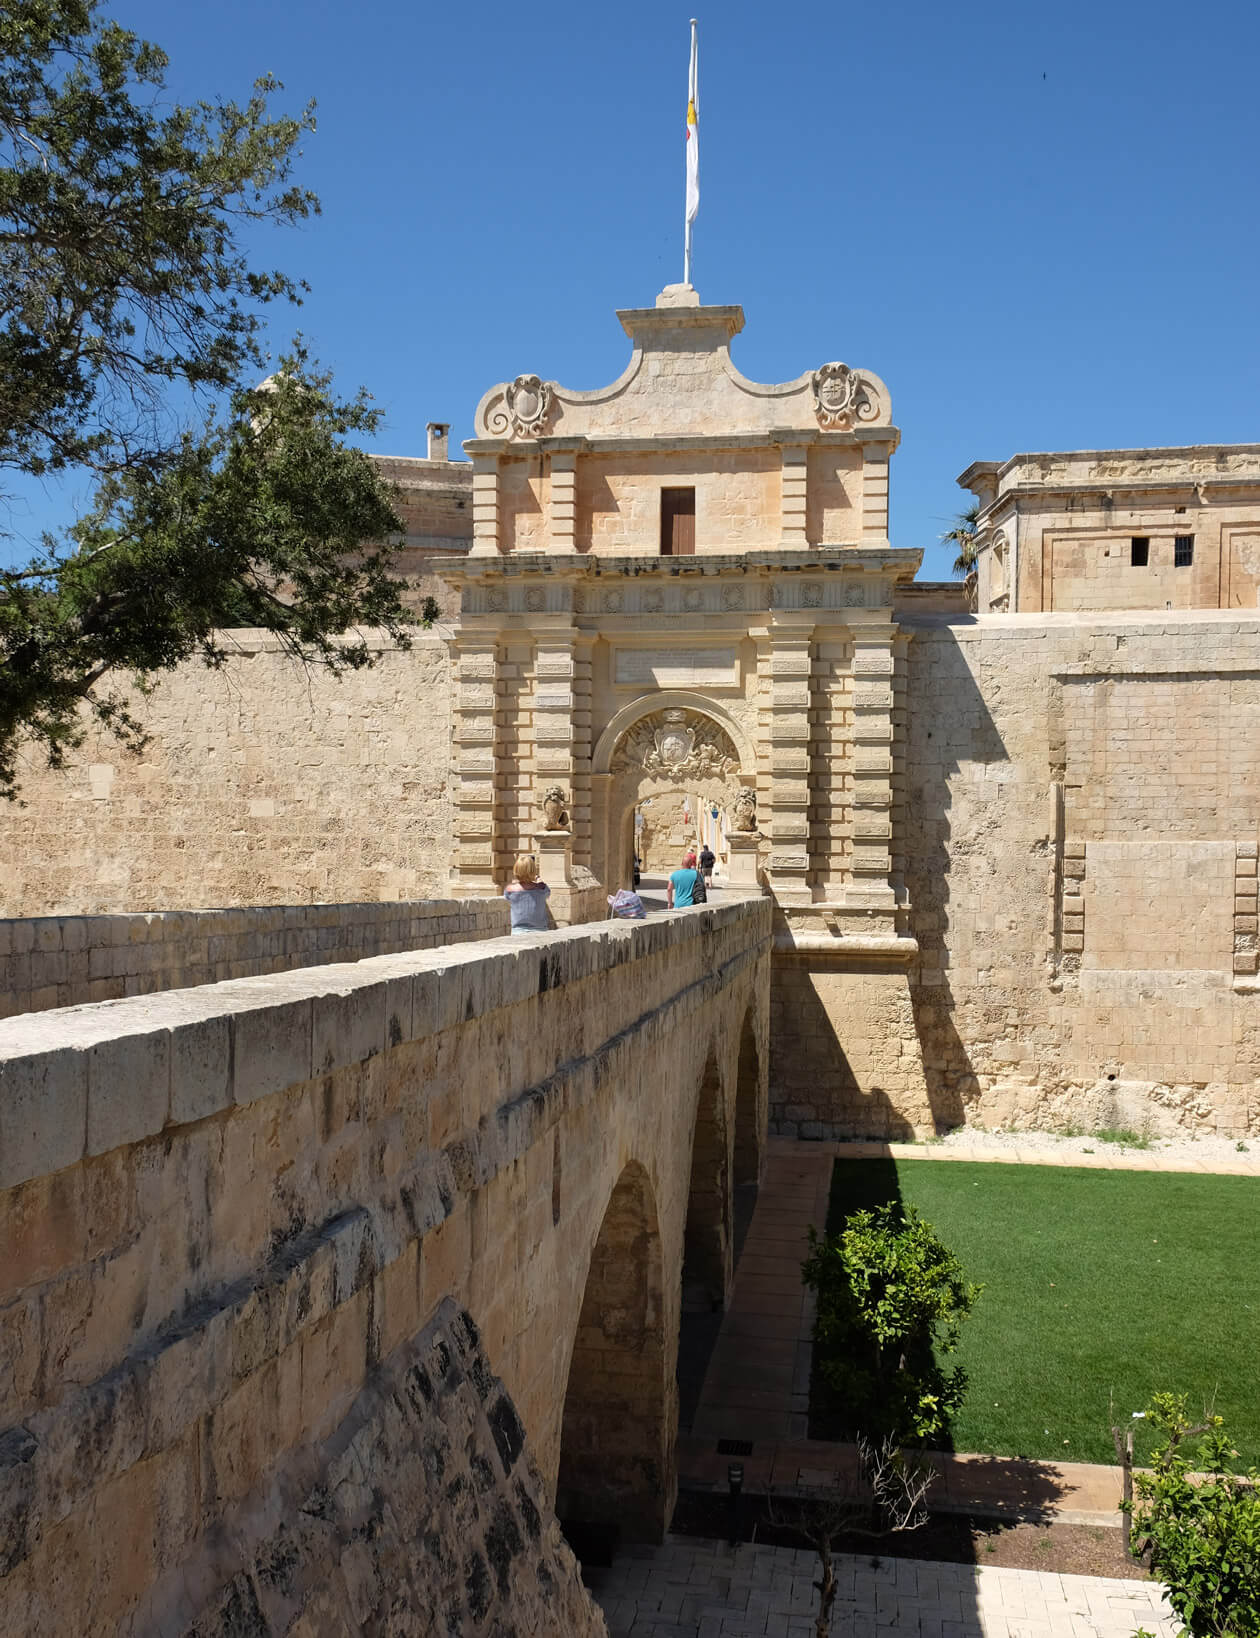 Mdina's main city gate